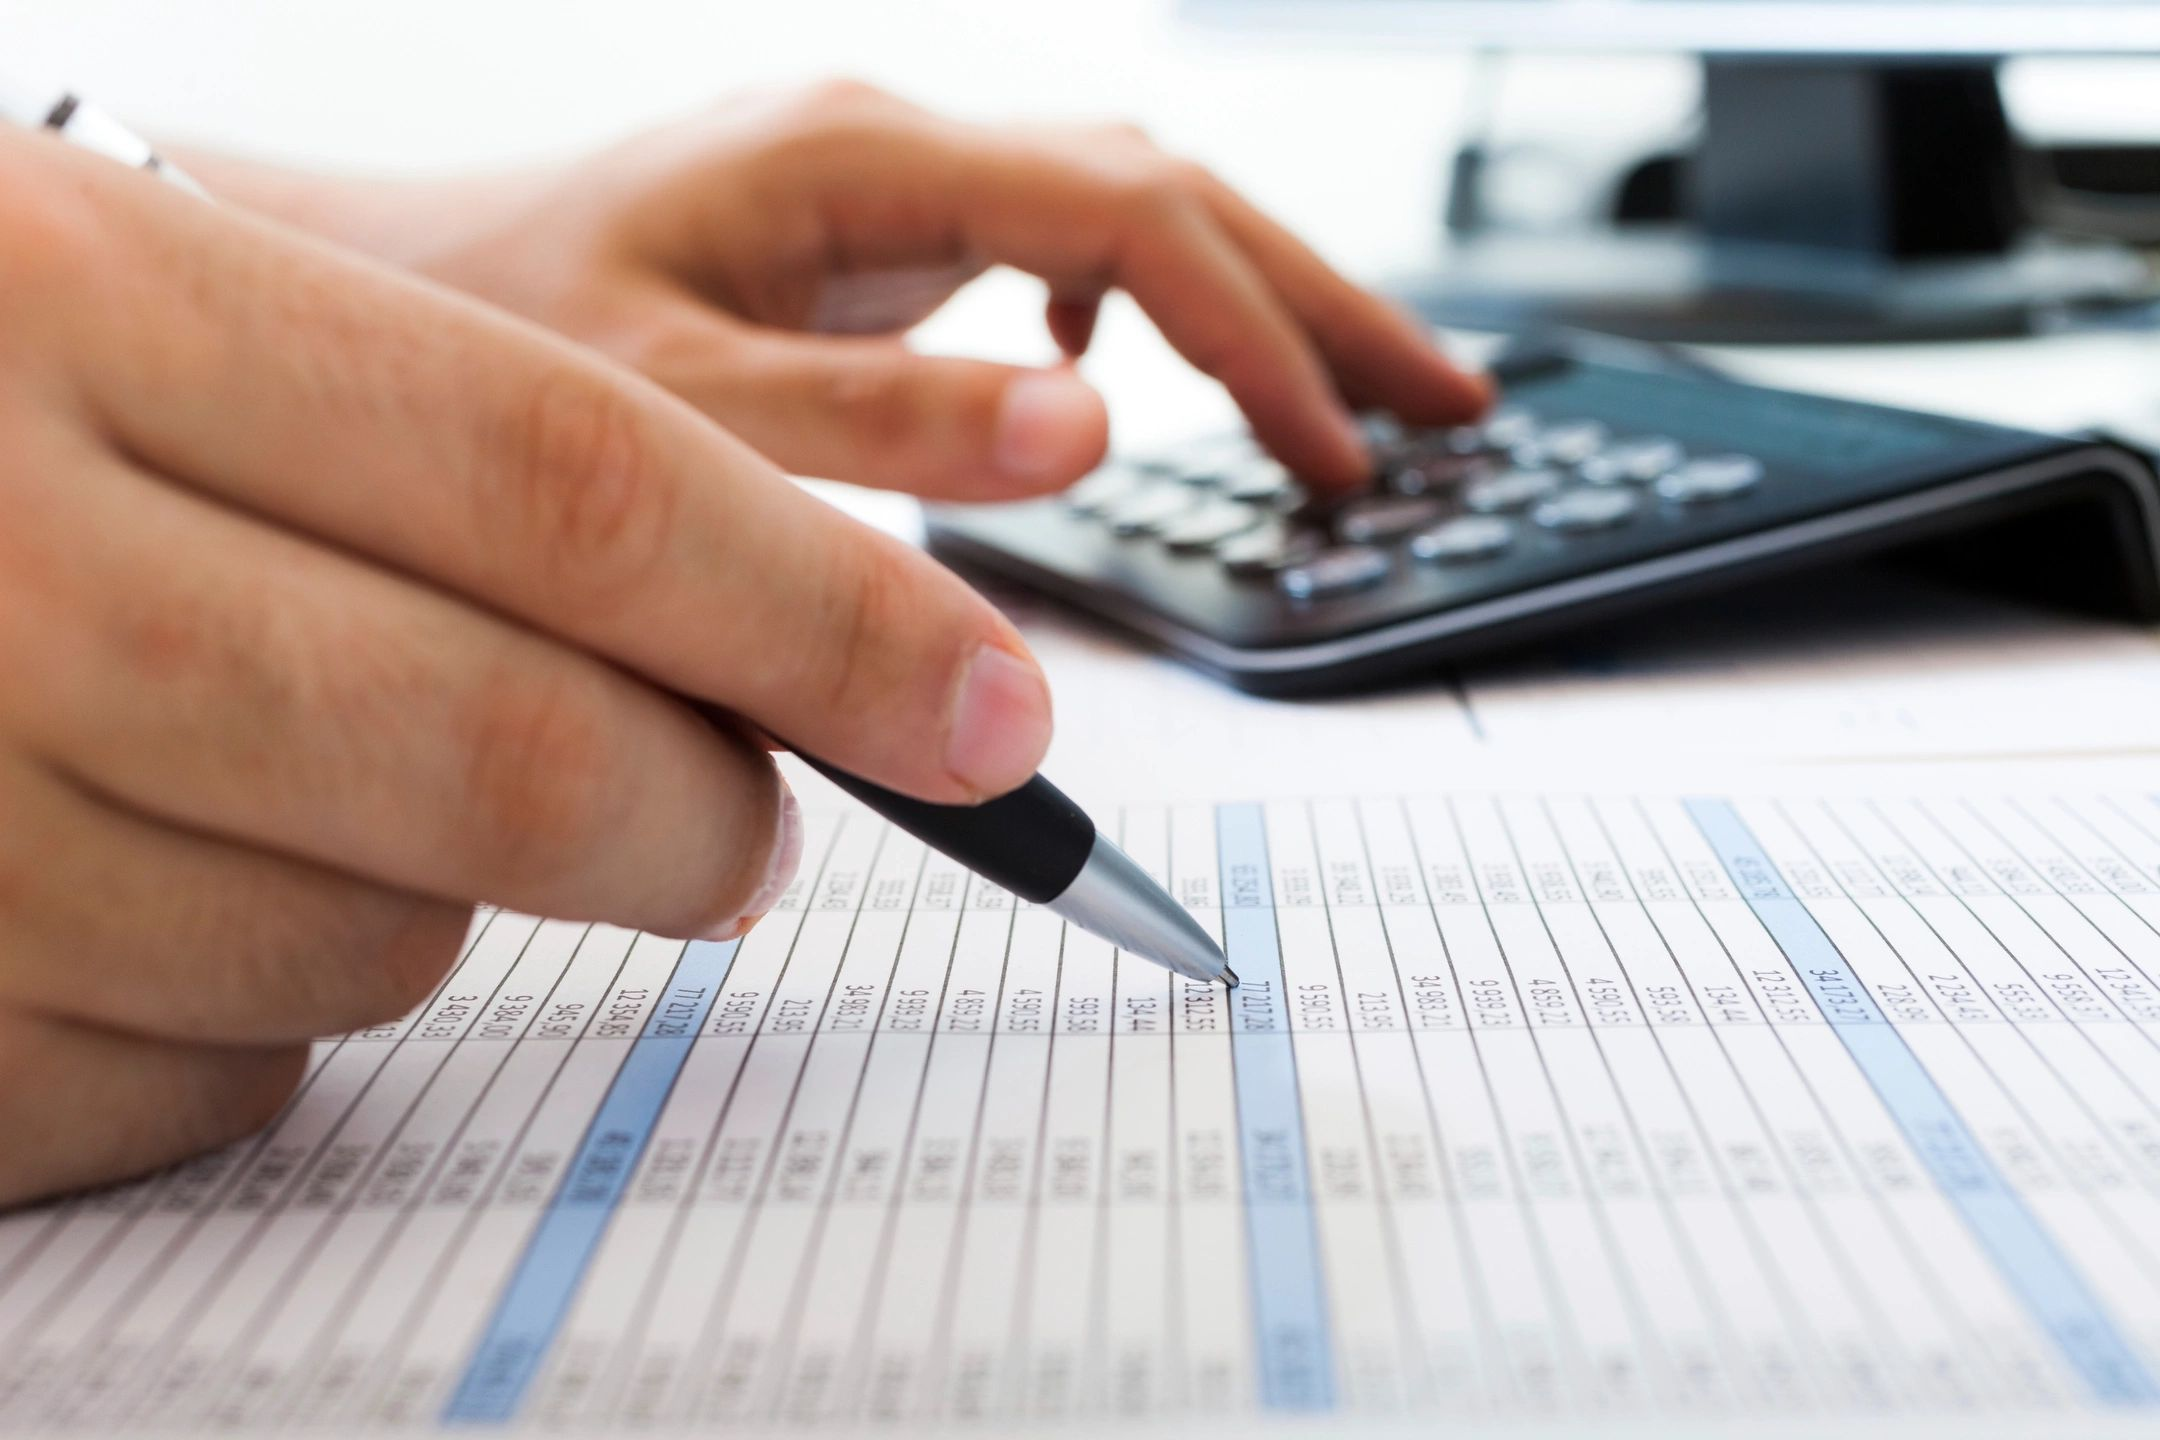 7 Positively Different Things To Do With Your Tax Return This Year